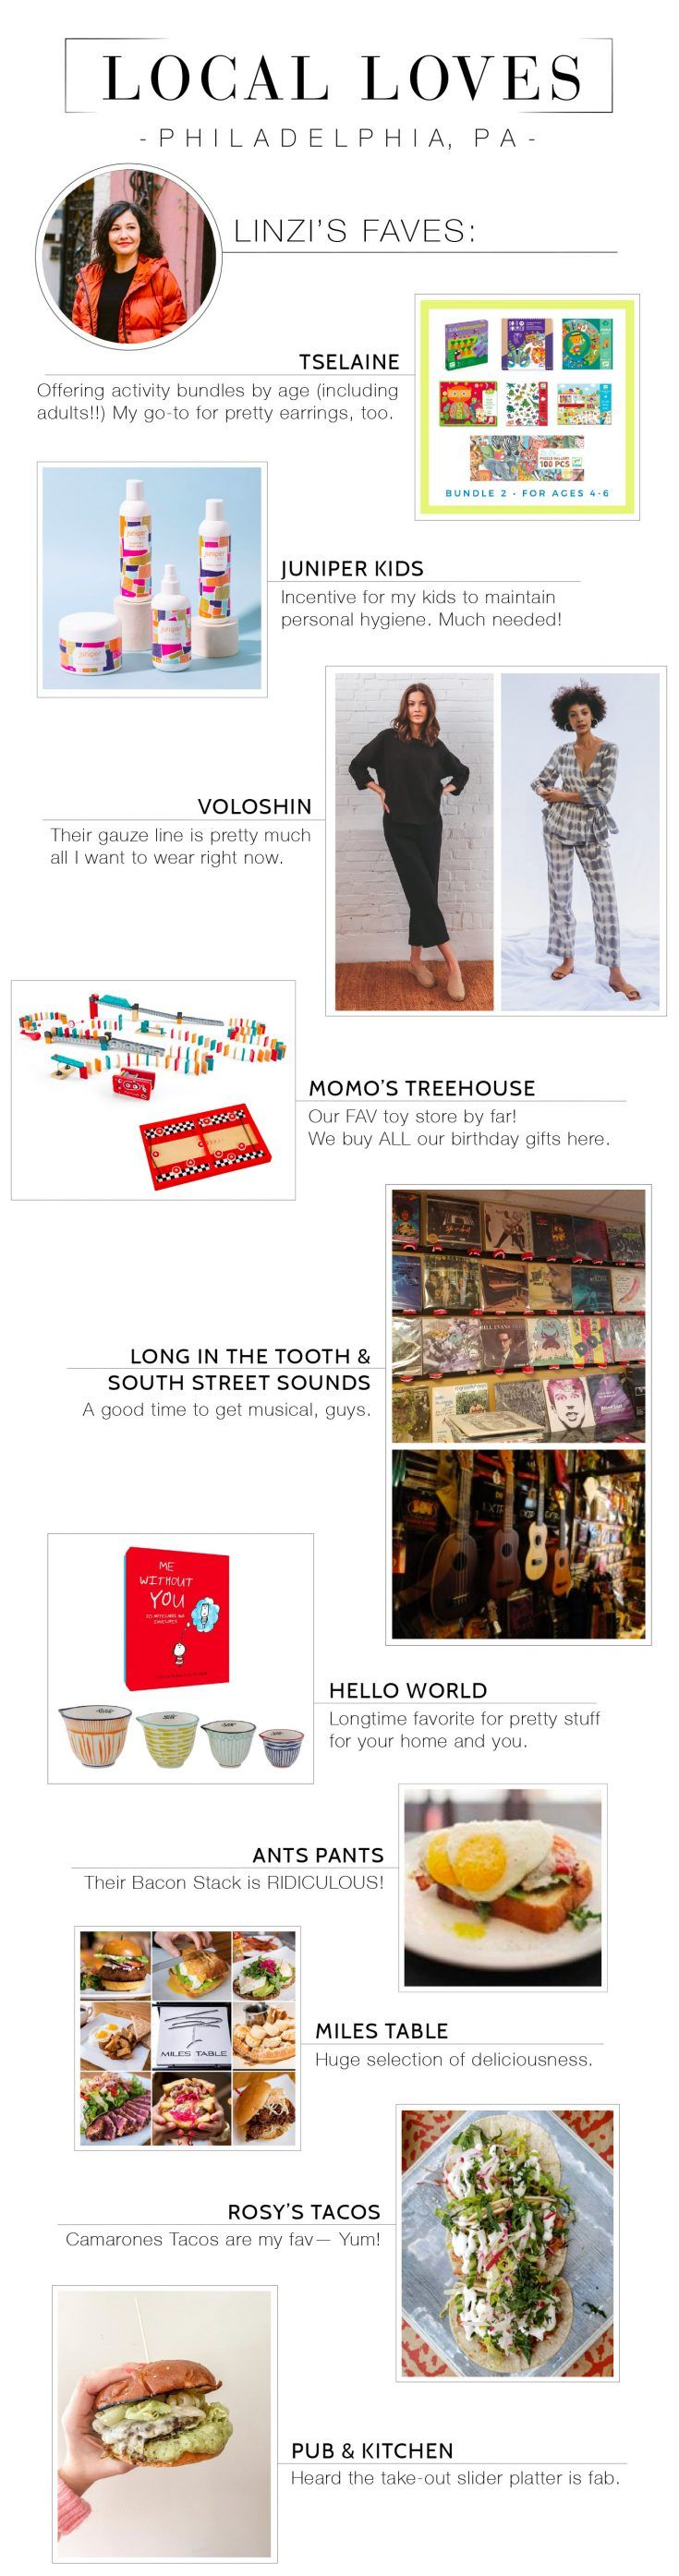 Local LOVE Philly: Shop Linzi's Favorite Small Businesses   Every day is small business Saturday. Looking to support local? These fab Philly shops are taking online orders, offering gift cards or worth shopping in the future.   #TheMomEditStyle #TheMomEditHome #PhiladelphiaSmallBusiness #LocalLovePhiladelphia #Voloshin #MomosTreehouse #JuniperKids #LongInTheTooth #SouthStreetSounds #HelloWorld #MilesTable #RosysTacoBar #PubKitchen